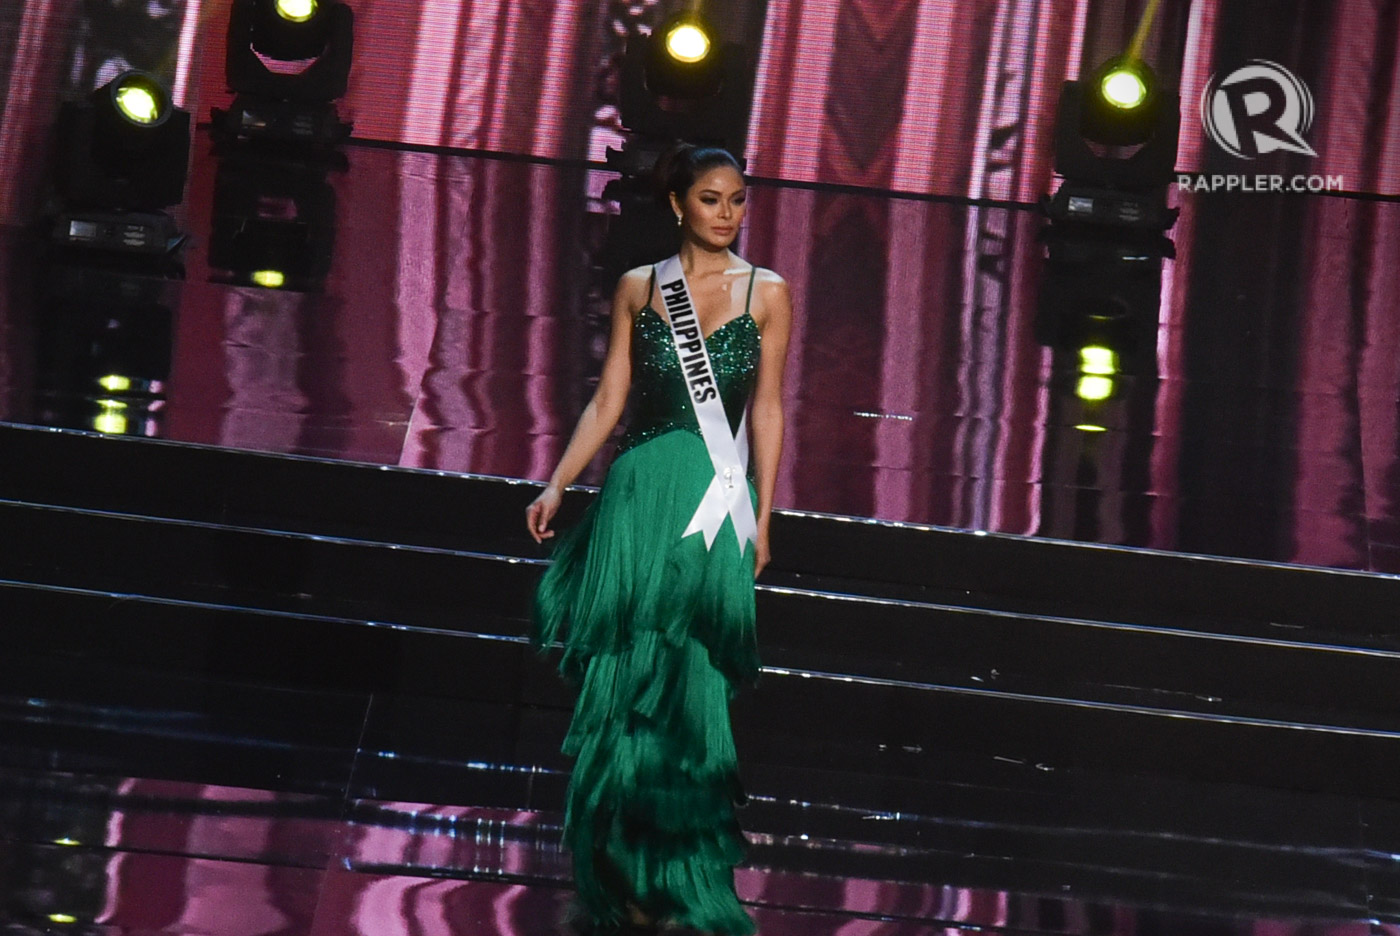 IN PHOTOS: Miss Universe 2016 evening gown competition